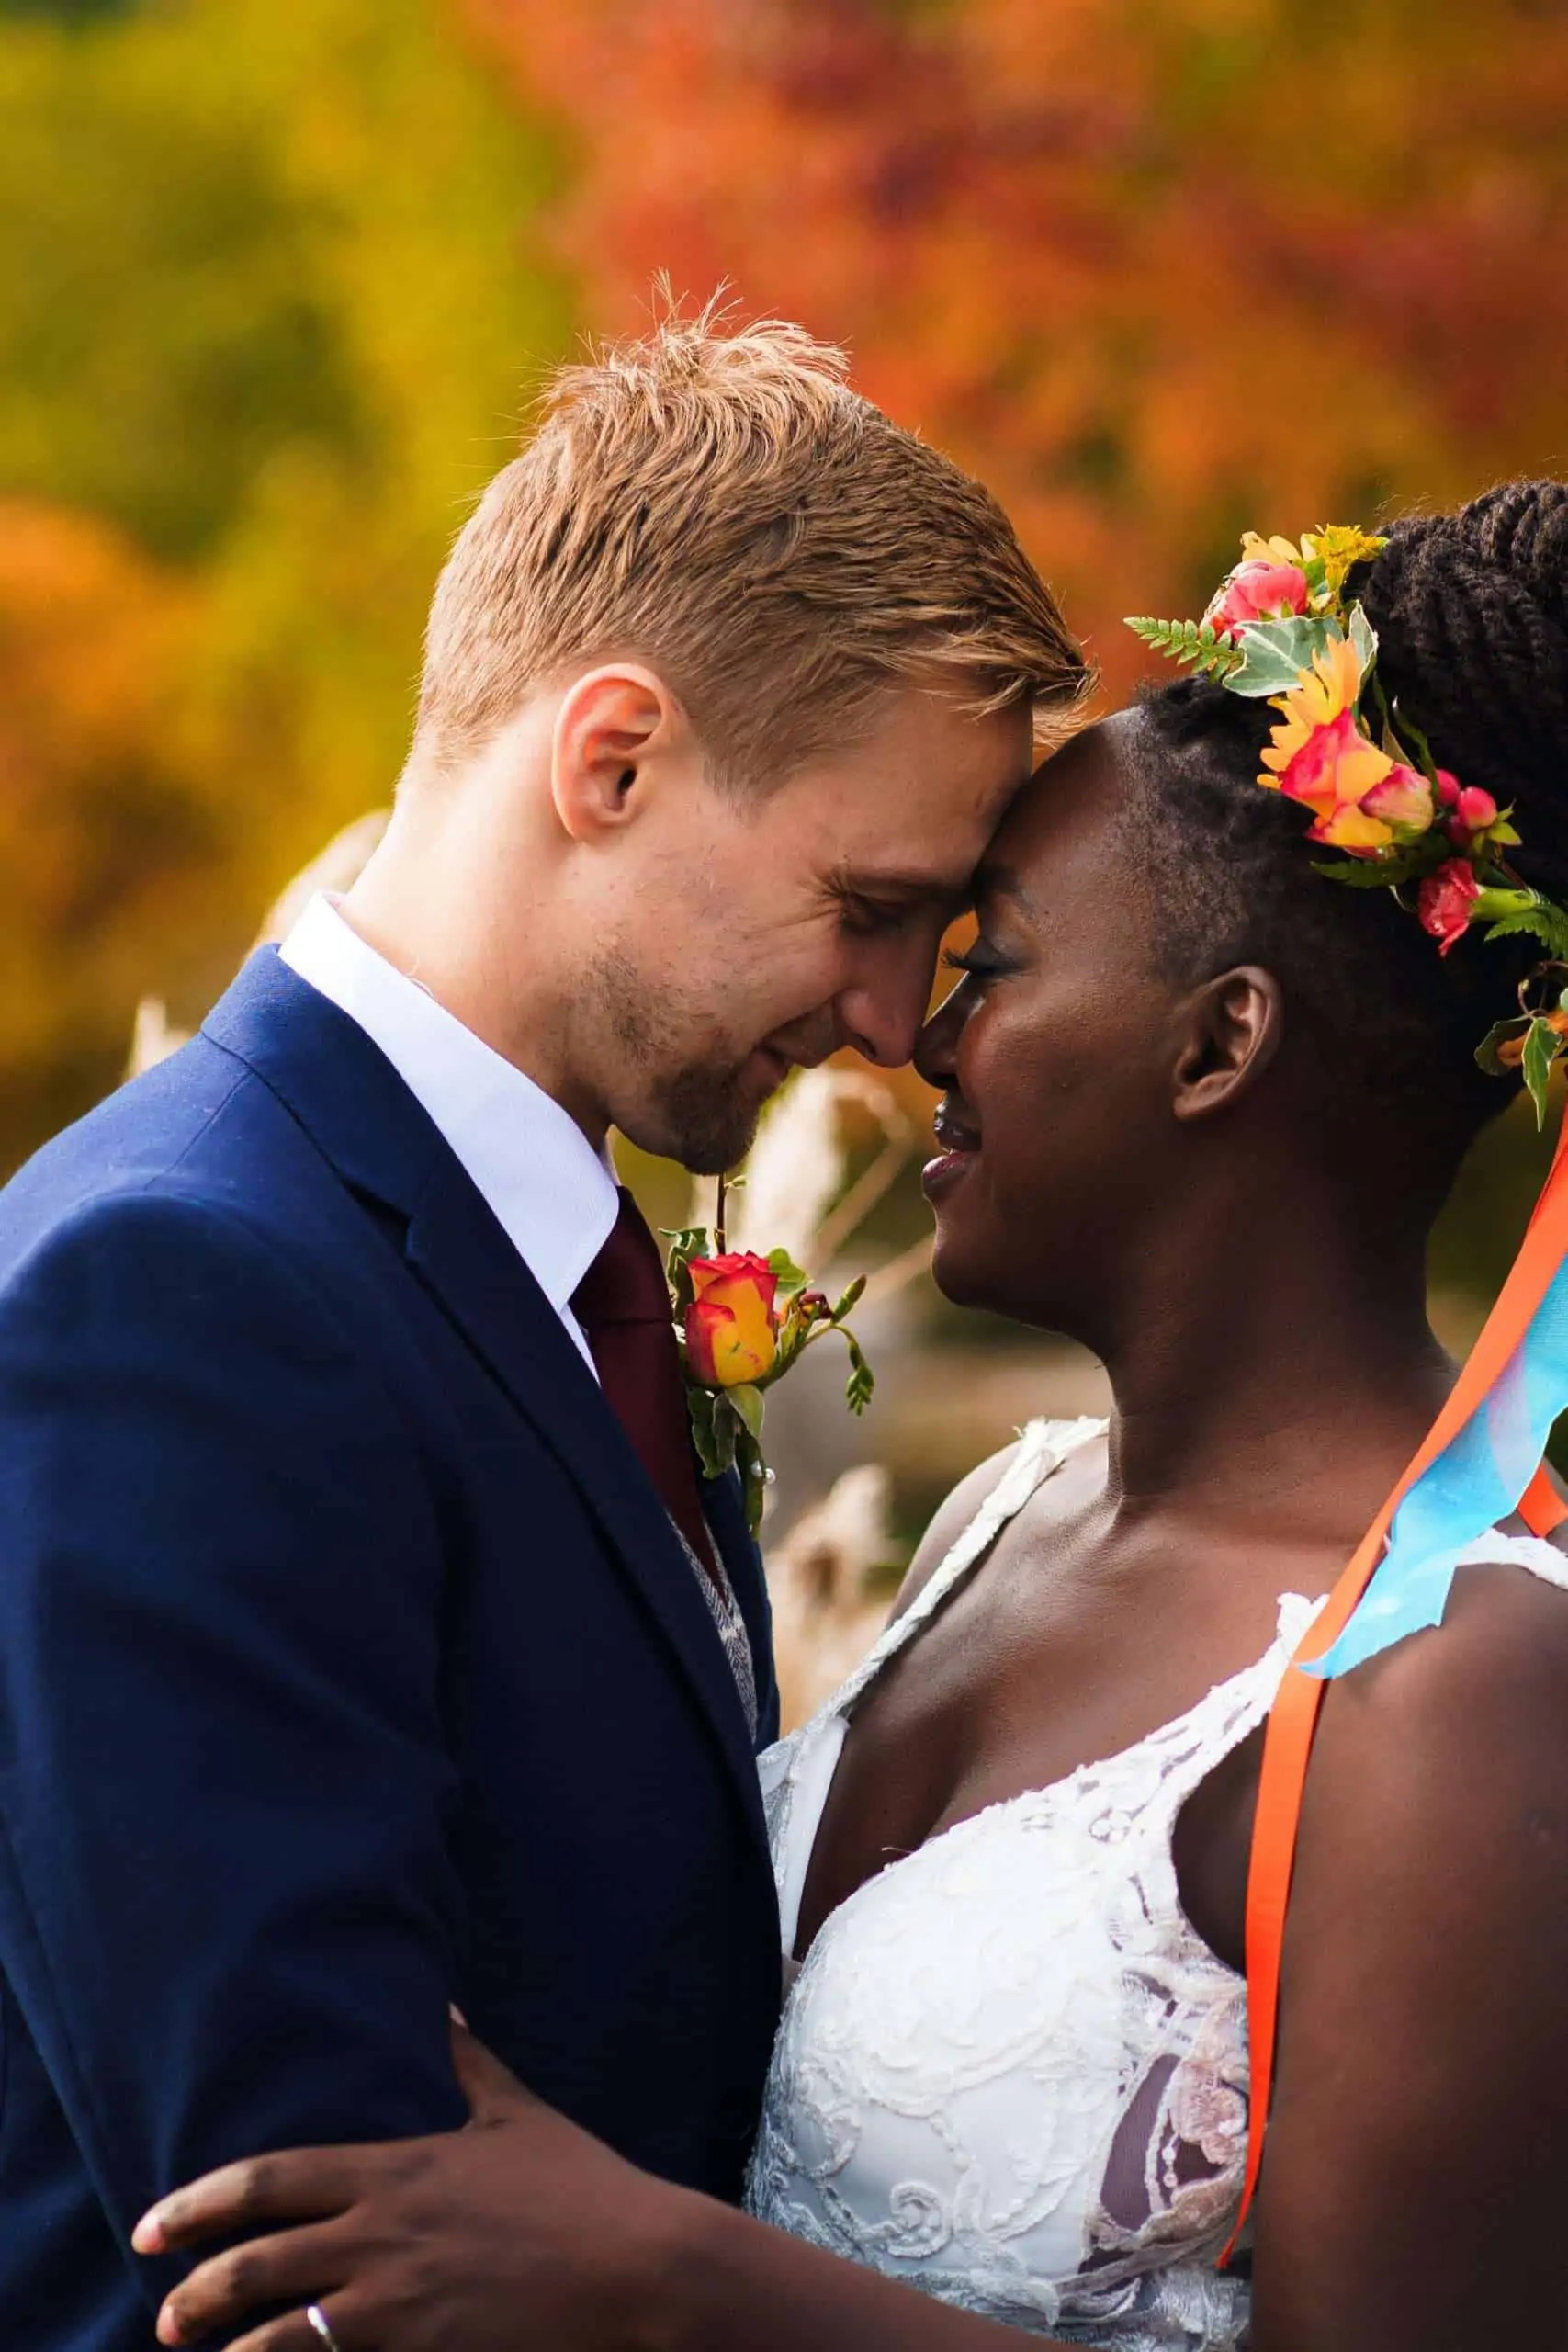 A bride and groom share a tender moment during their wedding